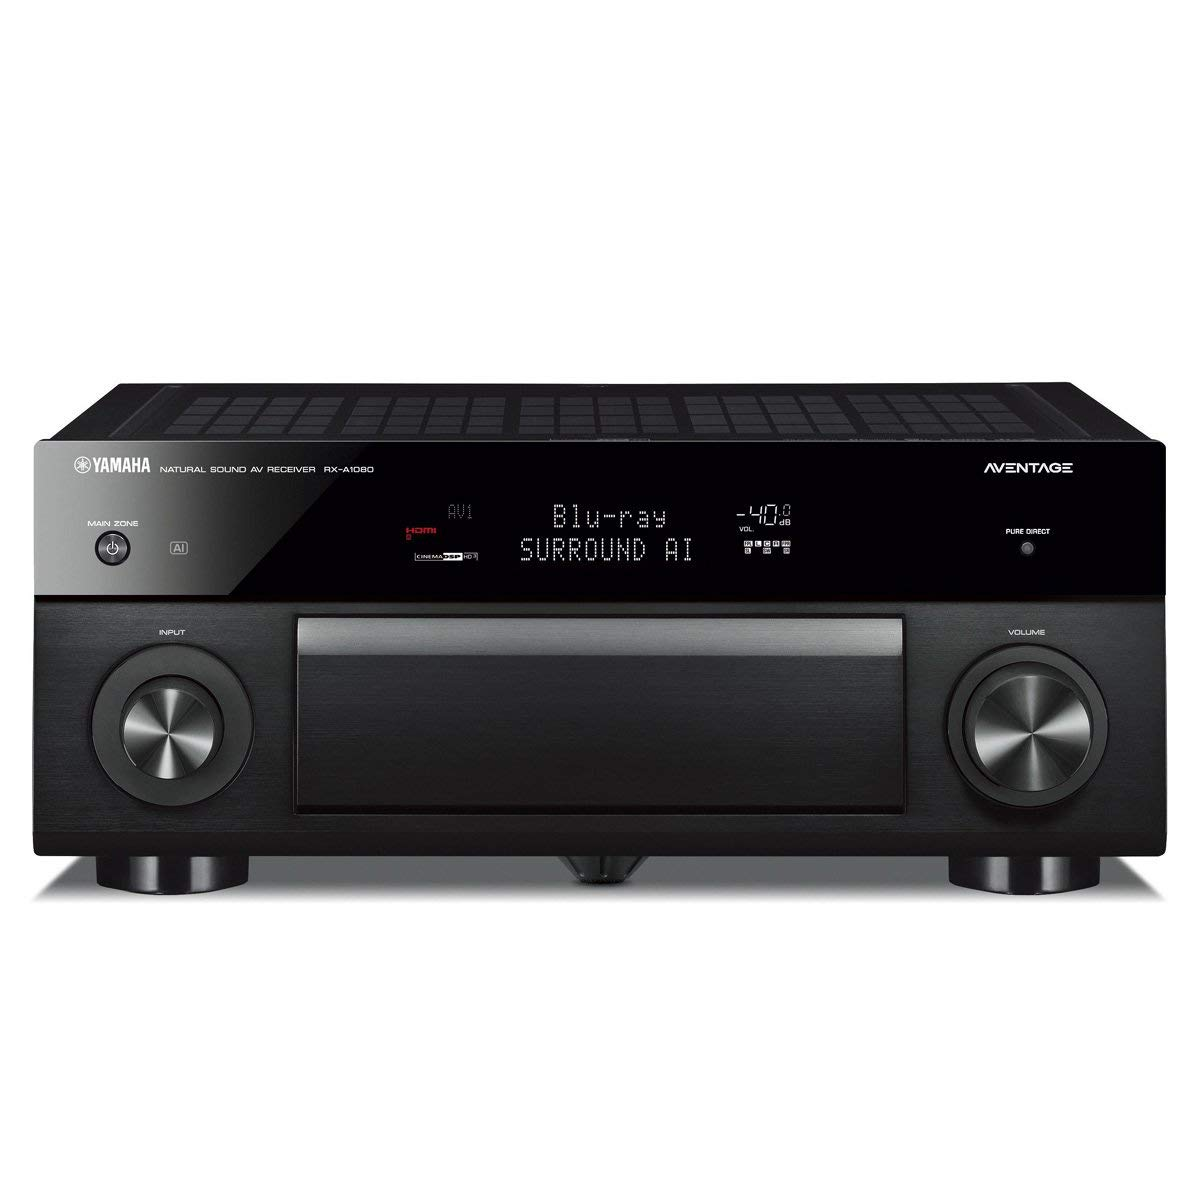 Yamaha AVENTAGE RX-A1080 7.2-Channel Network A/V Receiver by Yamaha Audio